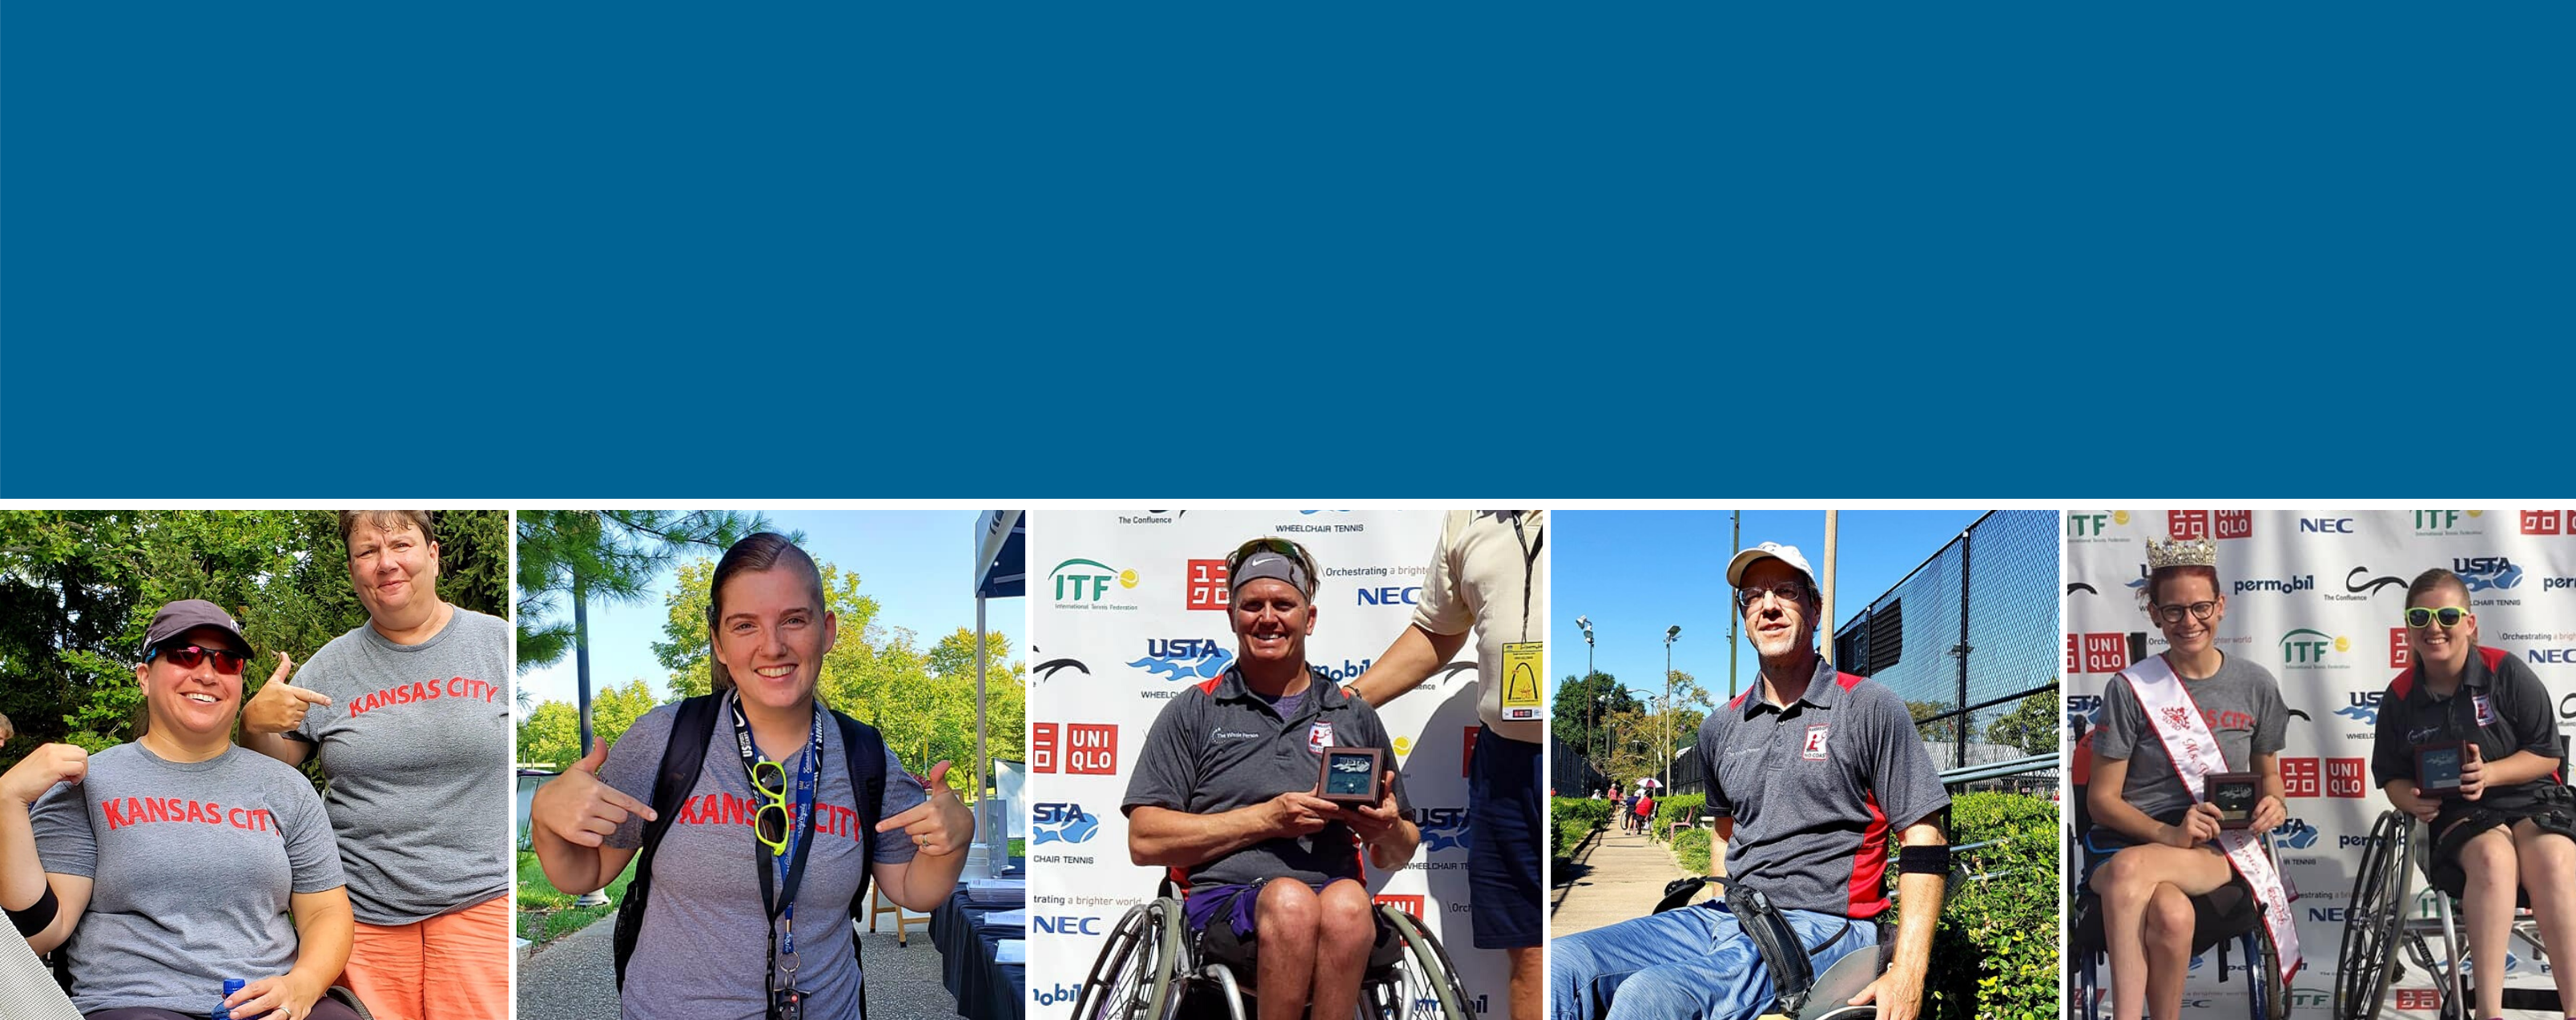 Images of winners at the USTA tennis tournament